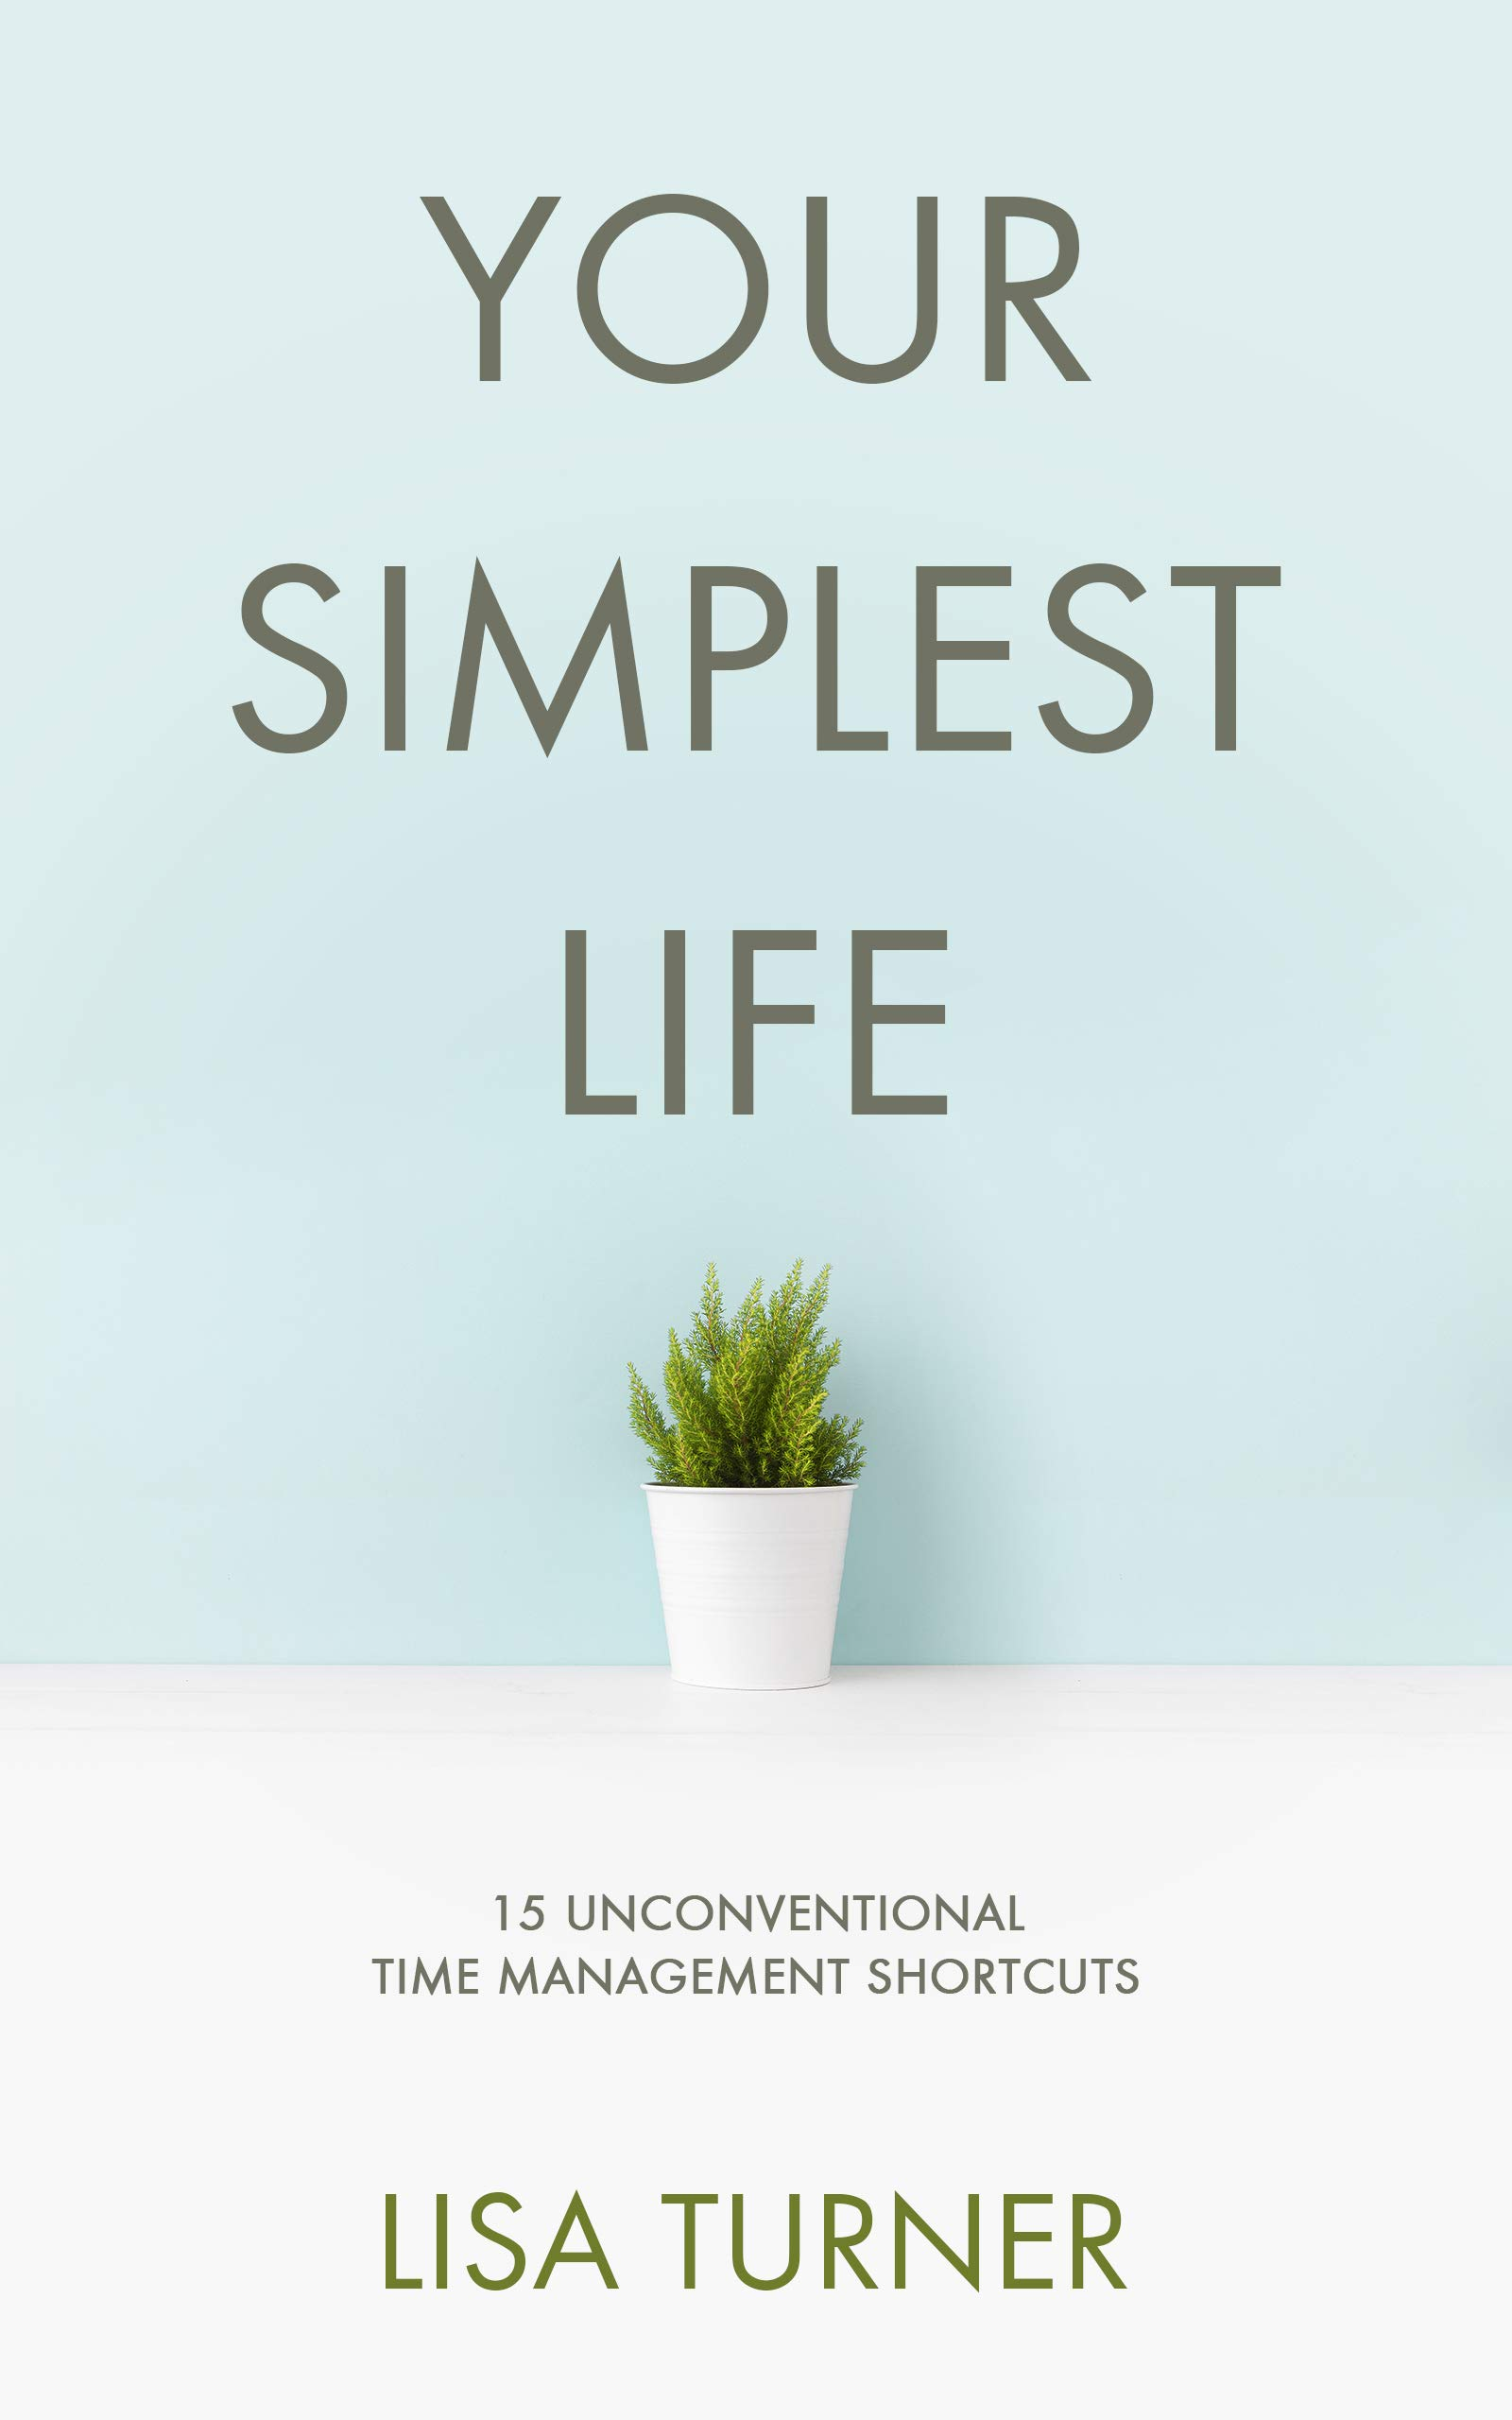 Image OfYour Simplest Life: 15 Unconventional Time Management Shortcuts – Productivity Tips And Goal-Setting Tricks So You Can Fin...